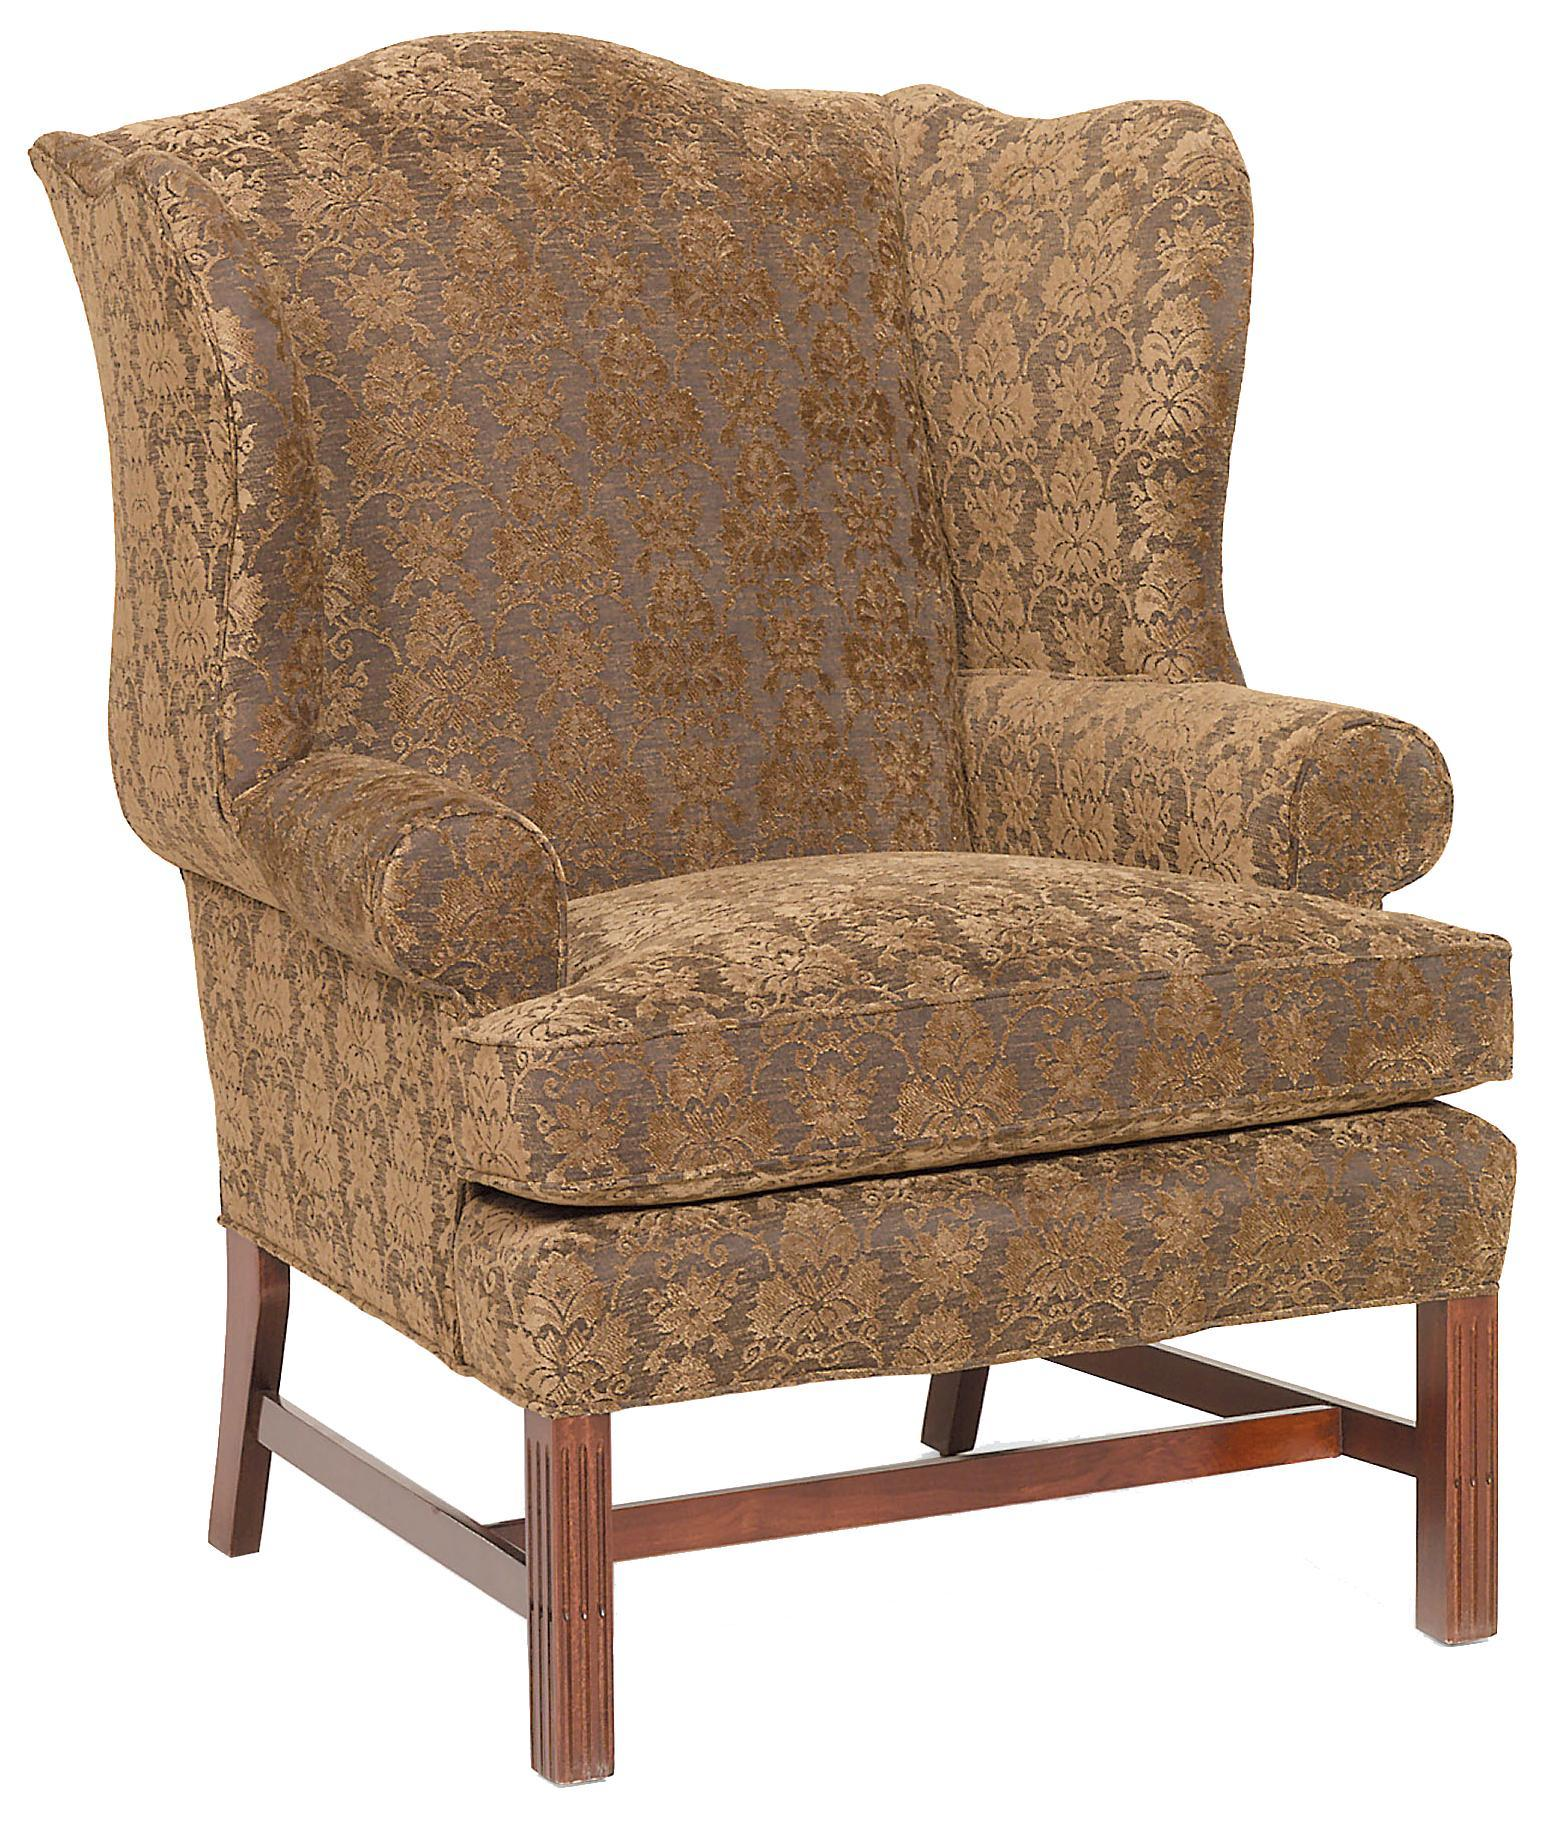 Fairfield Chairs Upholstered Wing Chair - Item Number: 1071-01